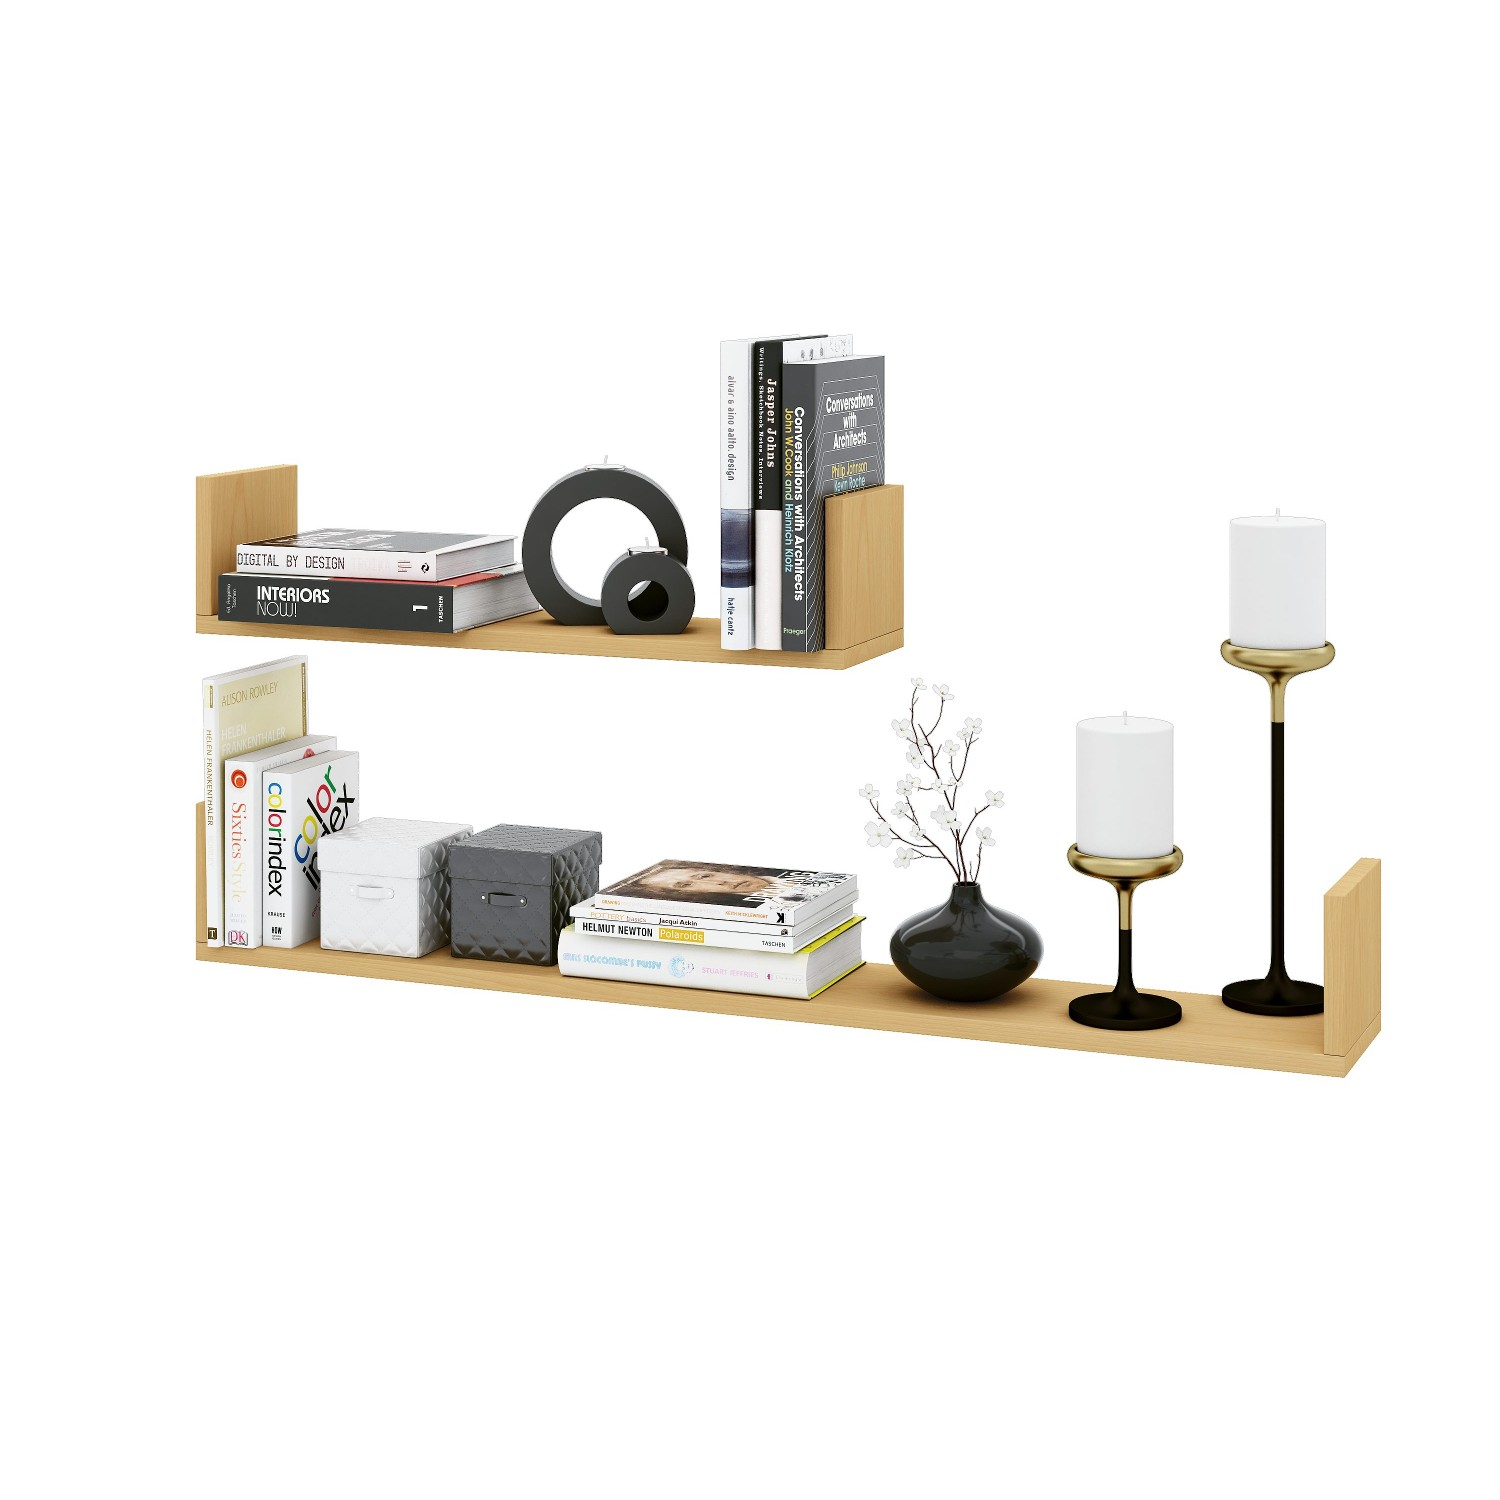 wandboard braga 2er set 60 und 100 cm breit buche. Black Bedroom Furniture Sets. Home Design Ideas